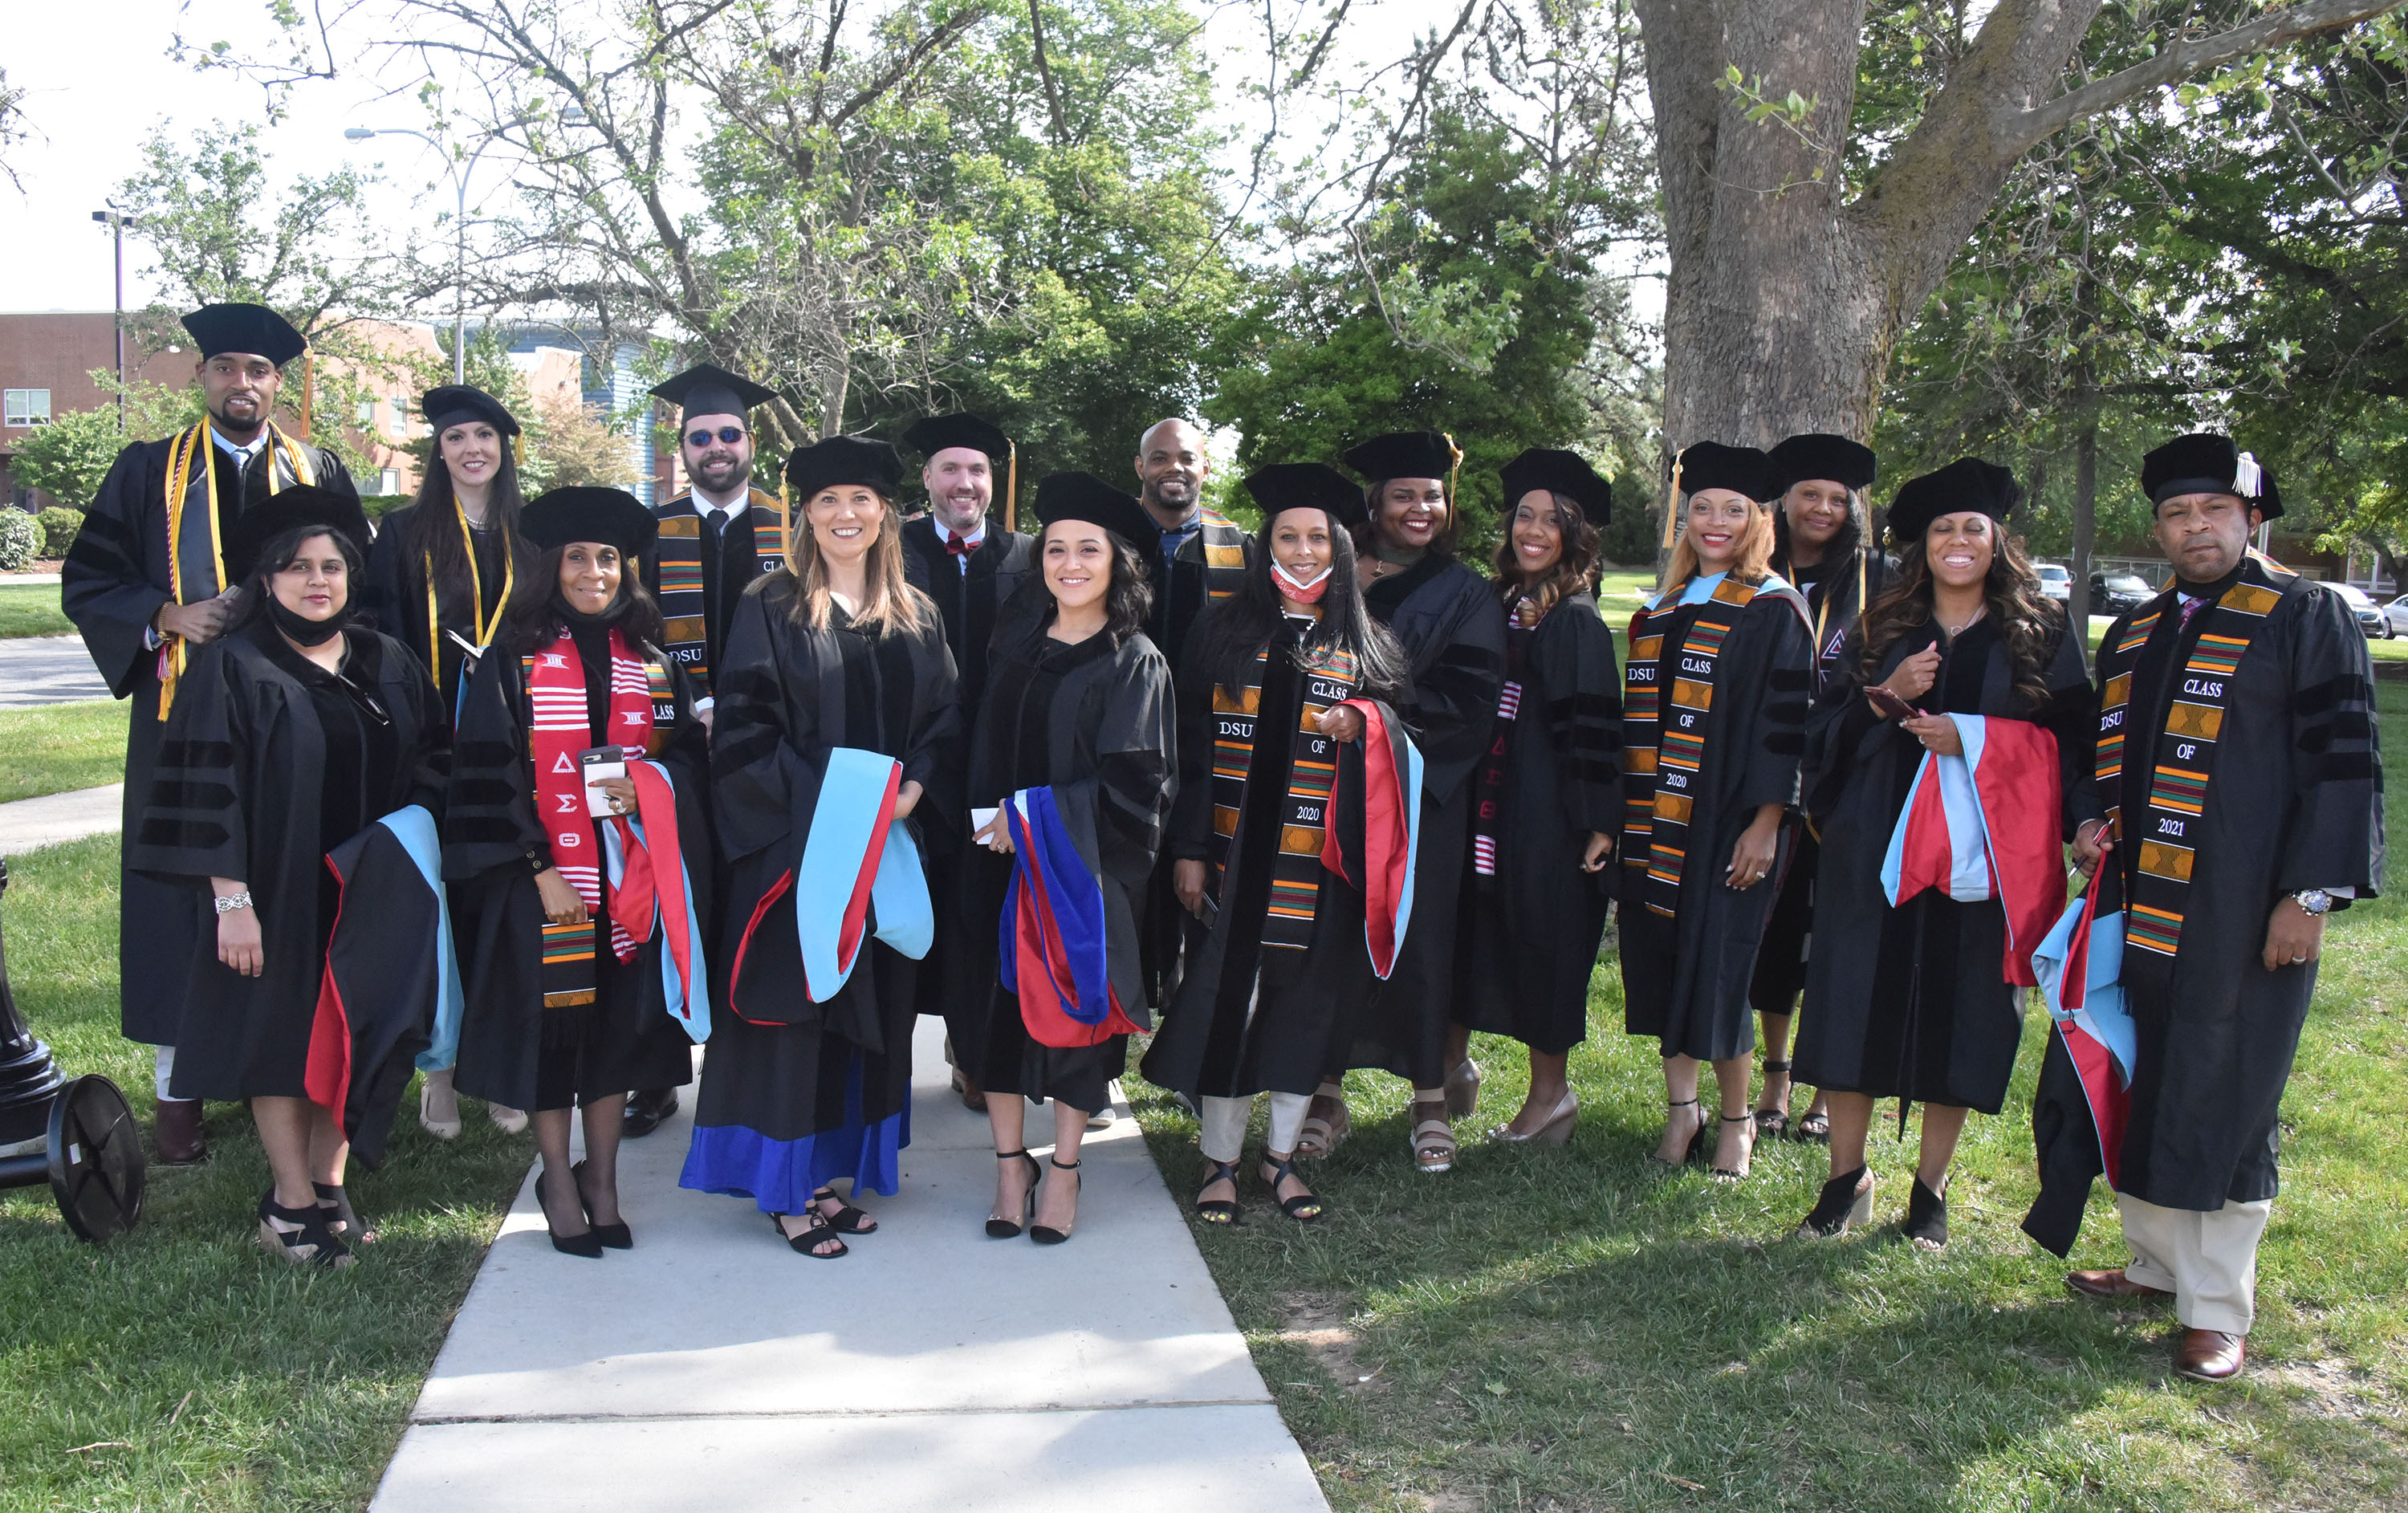 Some of the doctoral graduates gather for a group shot before their May 7 Commencement.